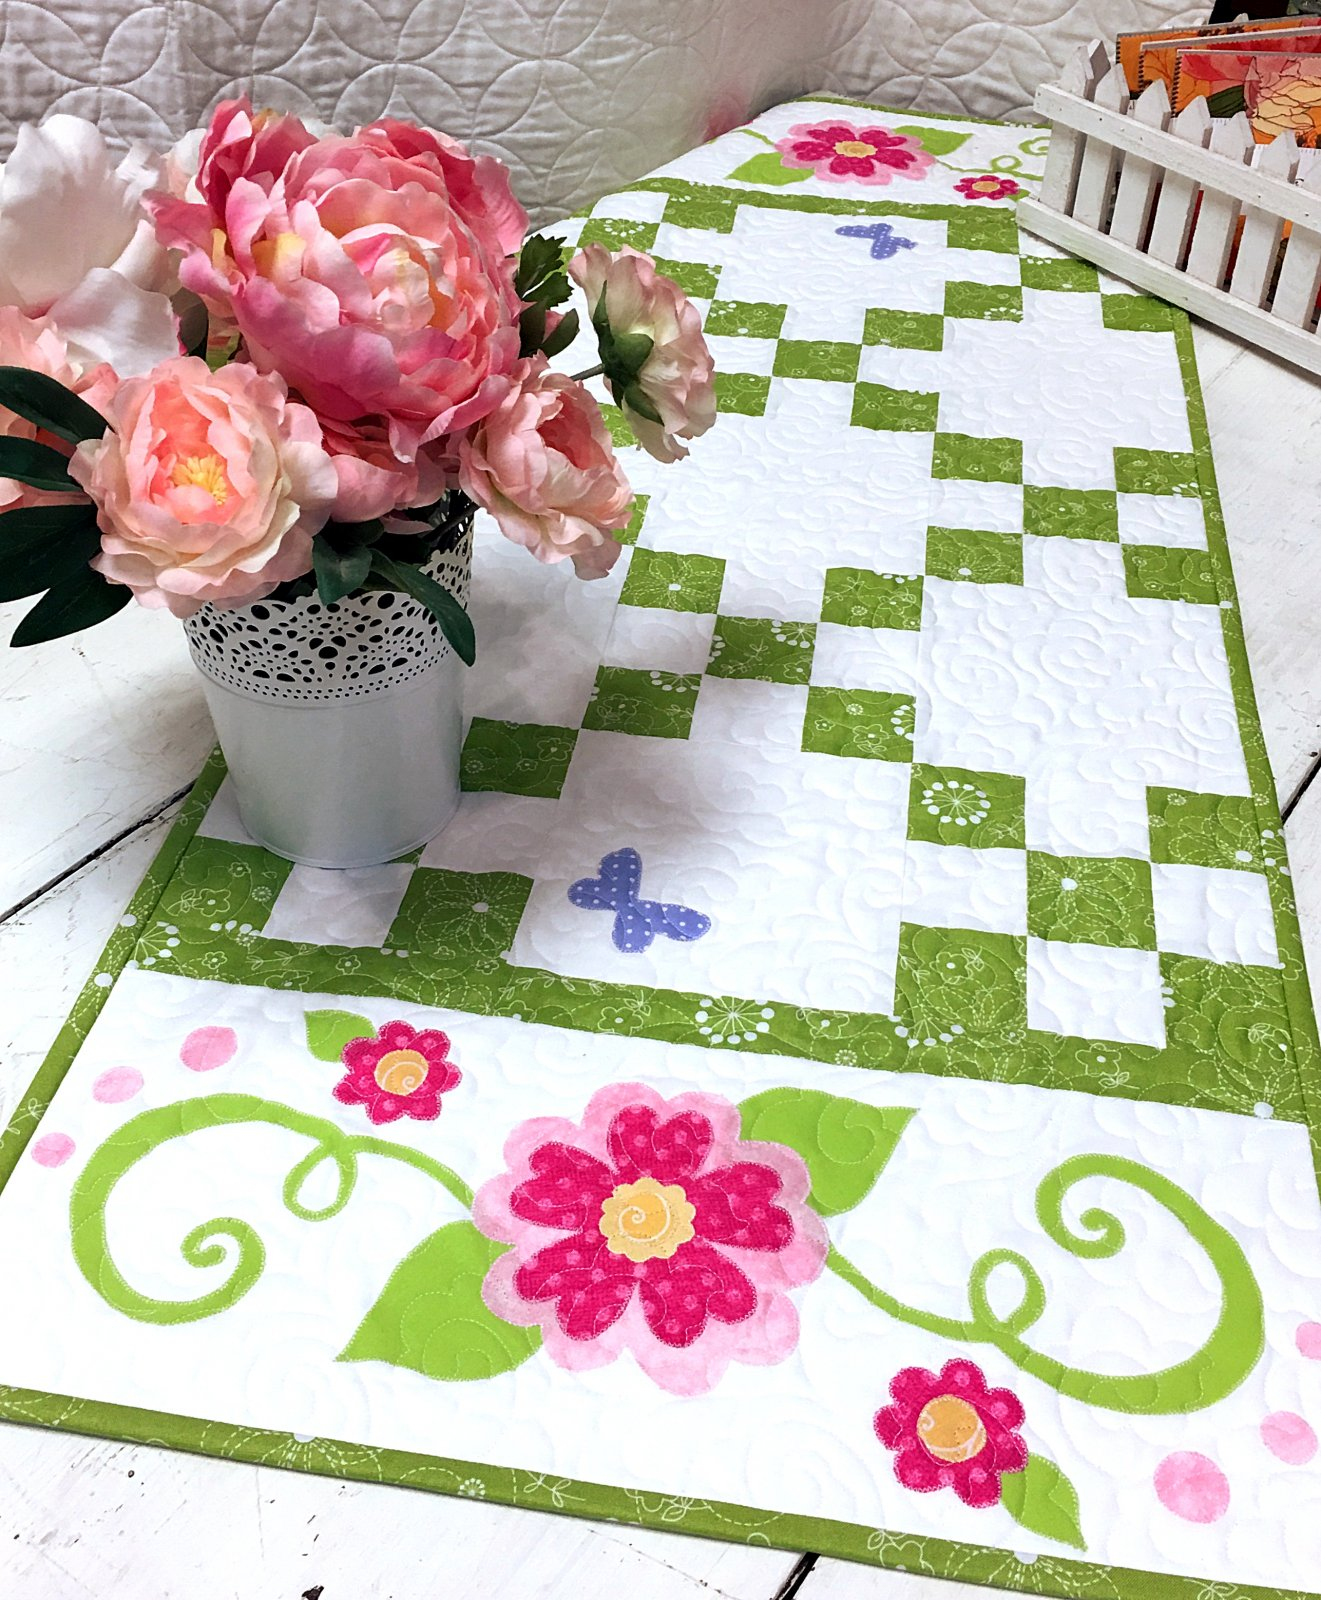 Swirly-Swirl Table Runner - Kit<br>Includes pattern!